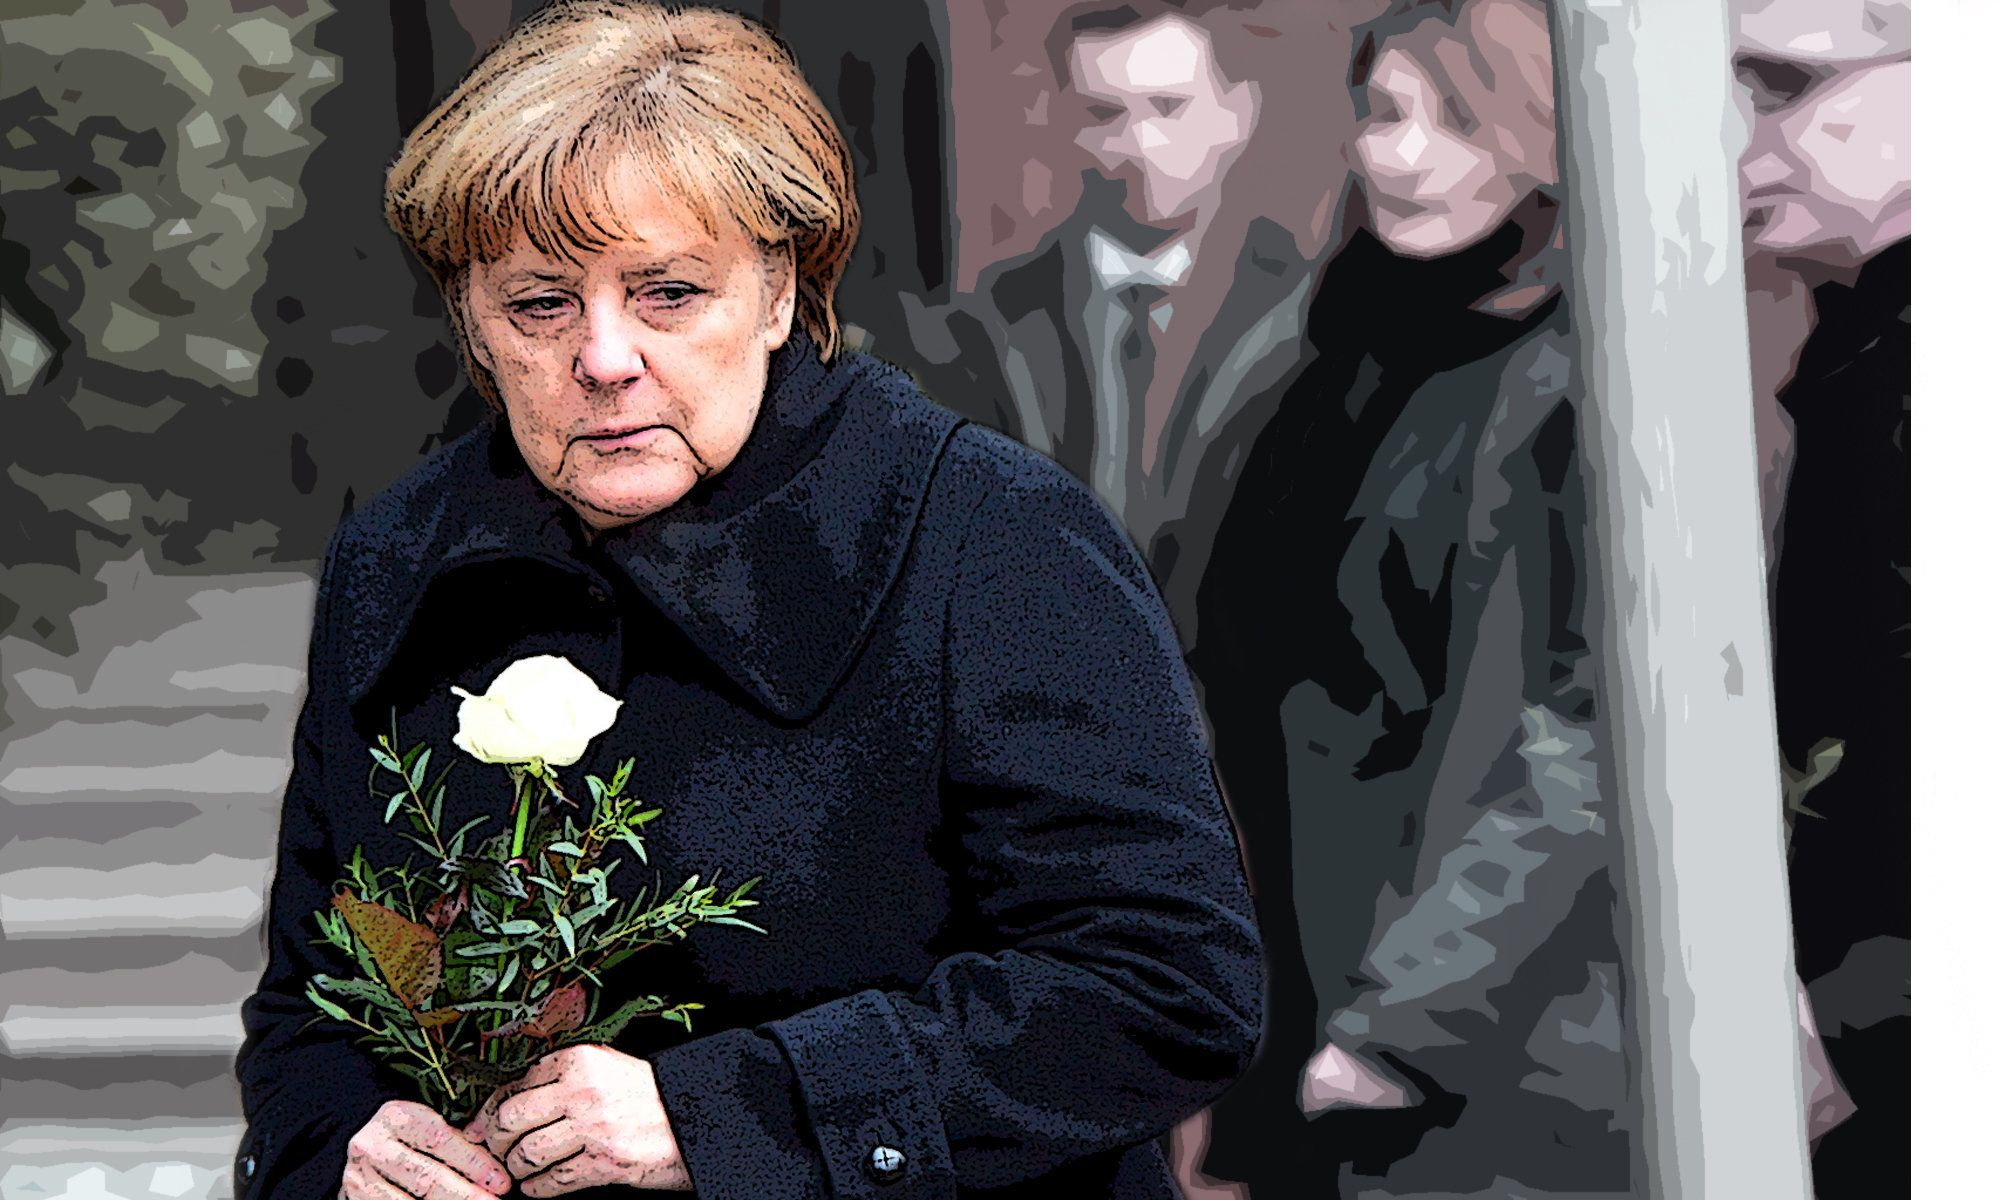 All eyes are on Merkel after this week's Christmas market attack in Berlin.